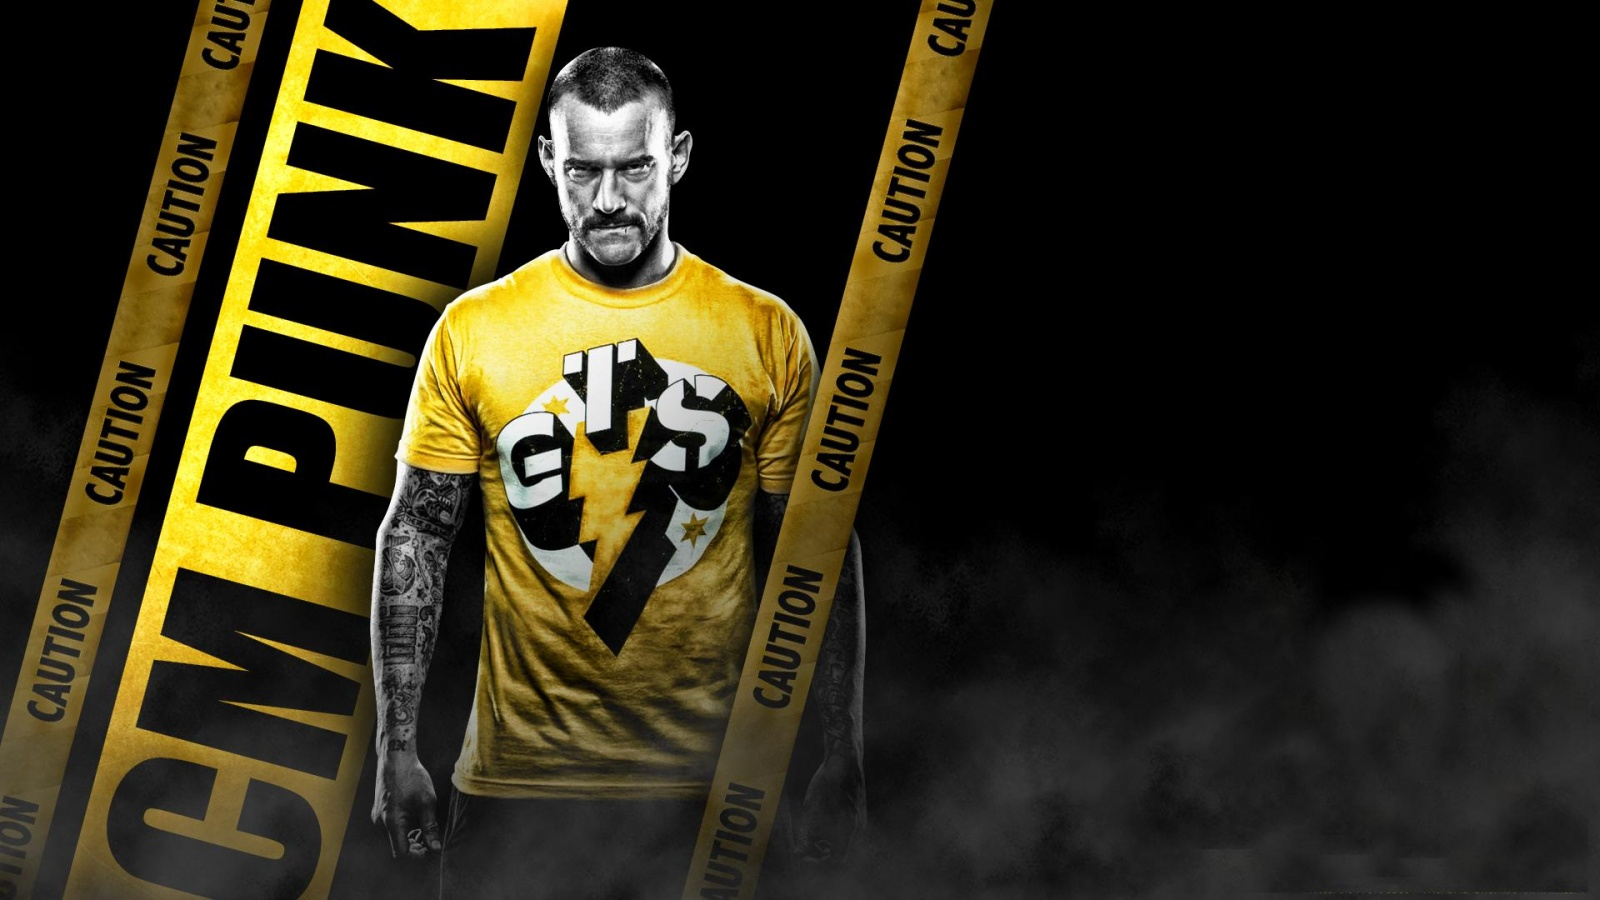 Download WWE CM Punk HD Wallpapers 6395 Full Size 1600x900